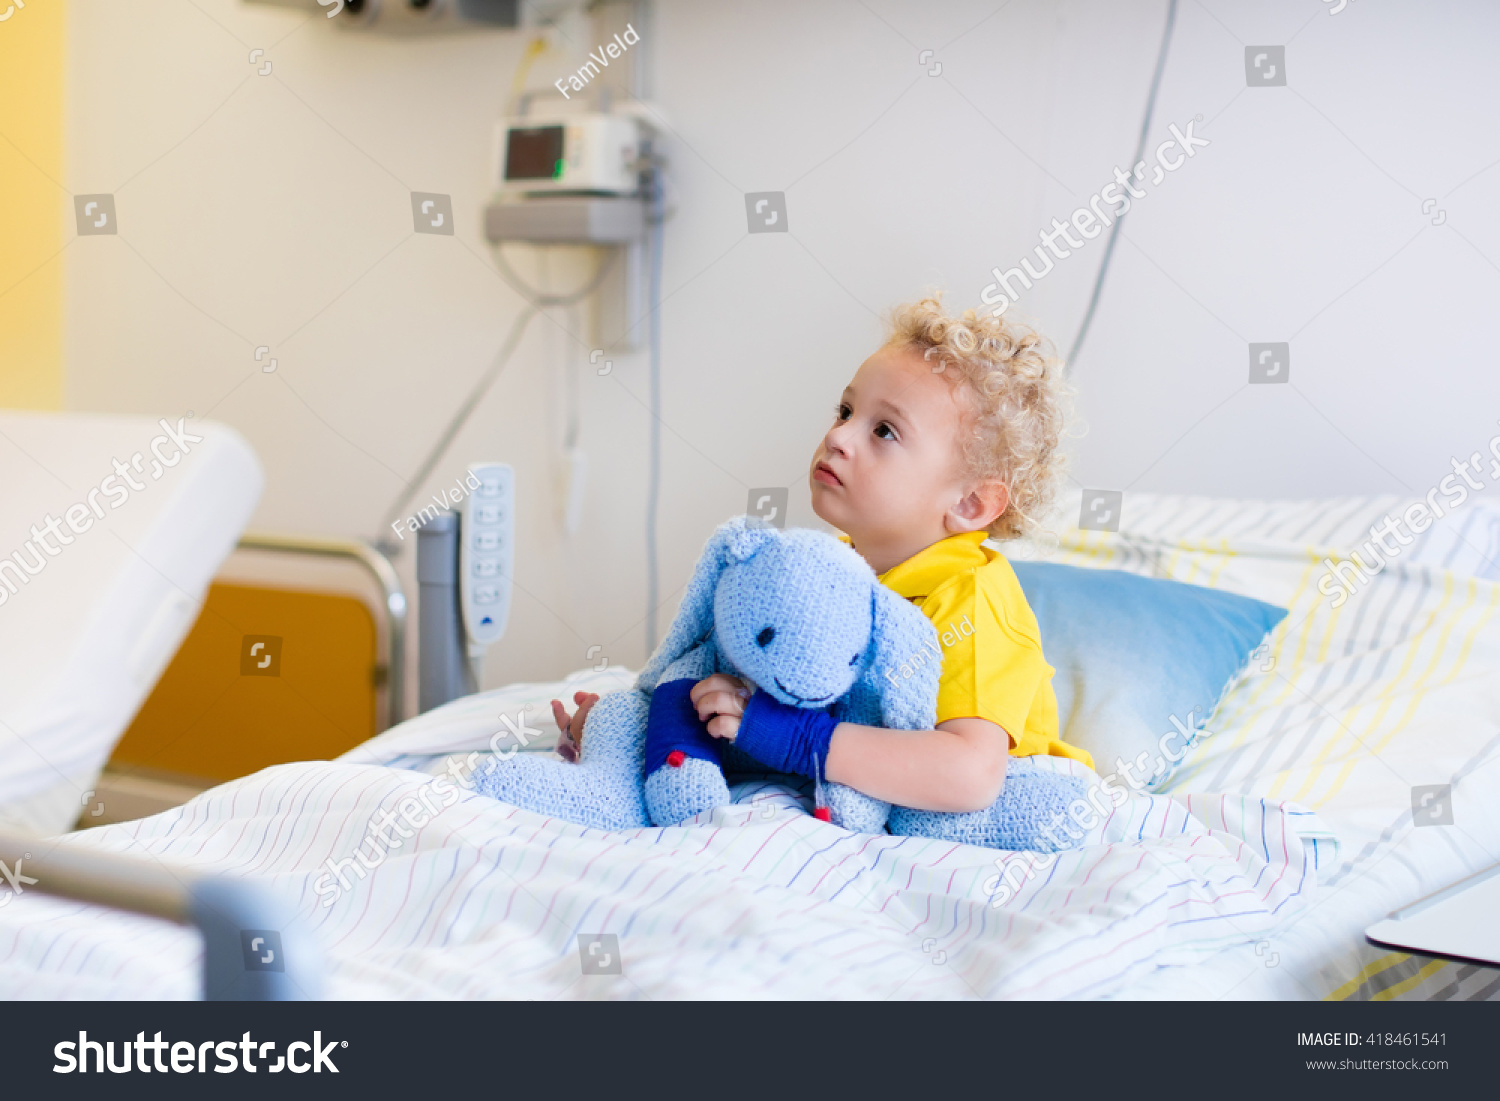 how to start an iv on a child